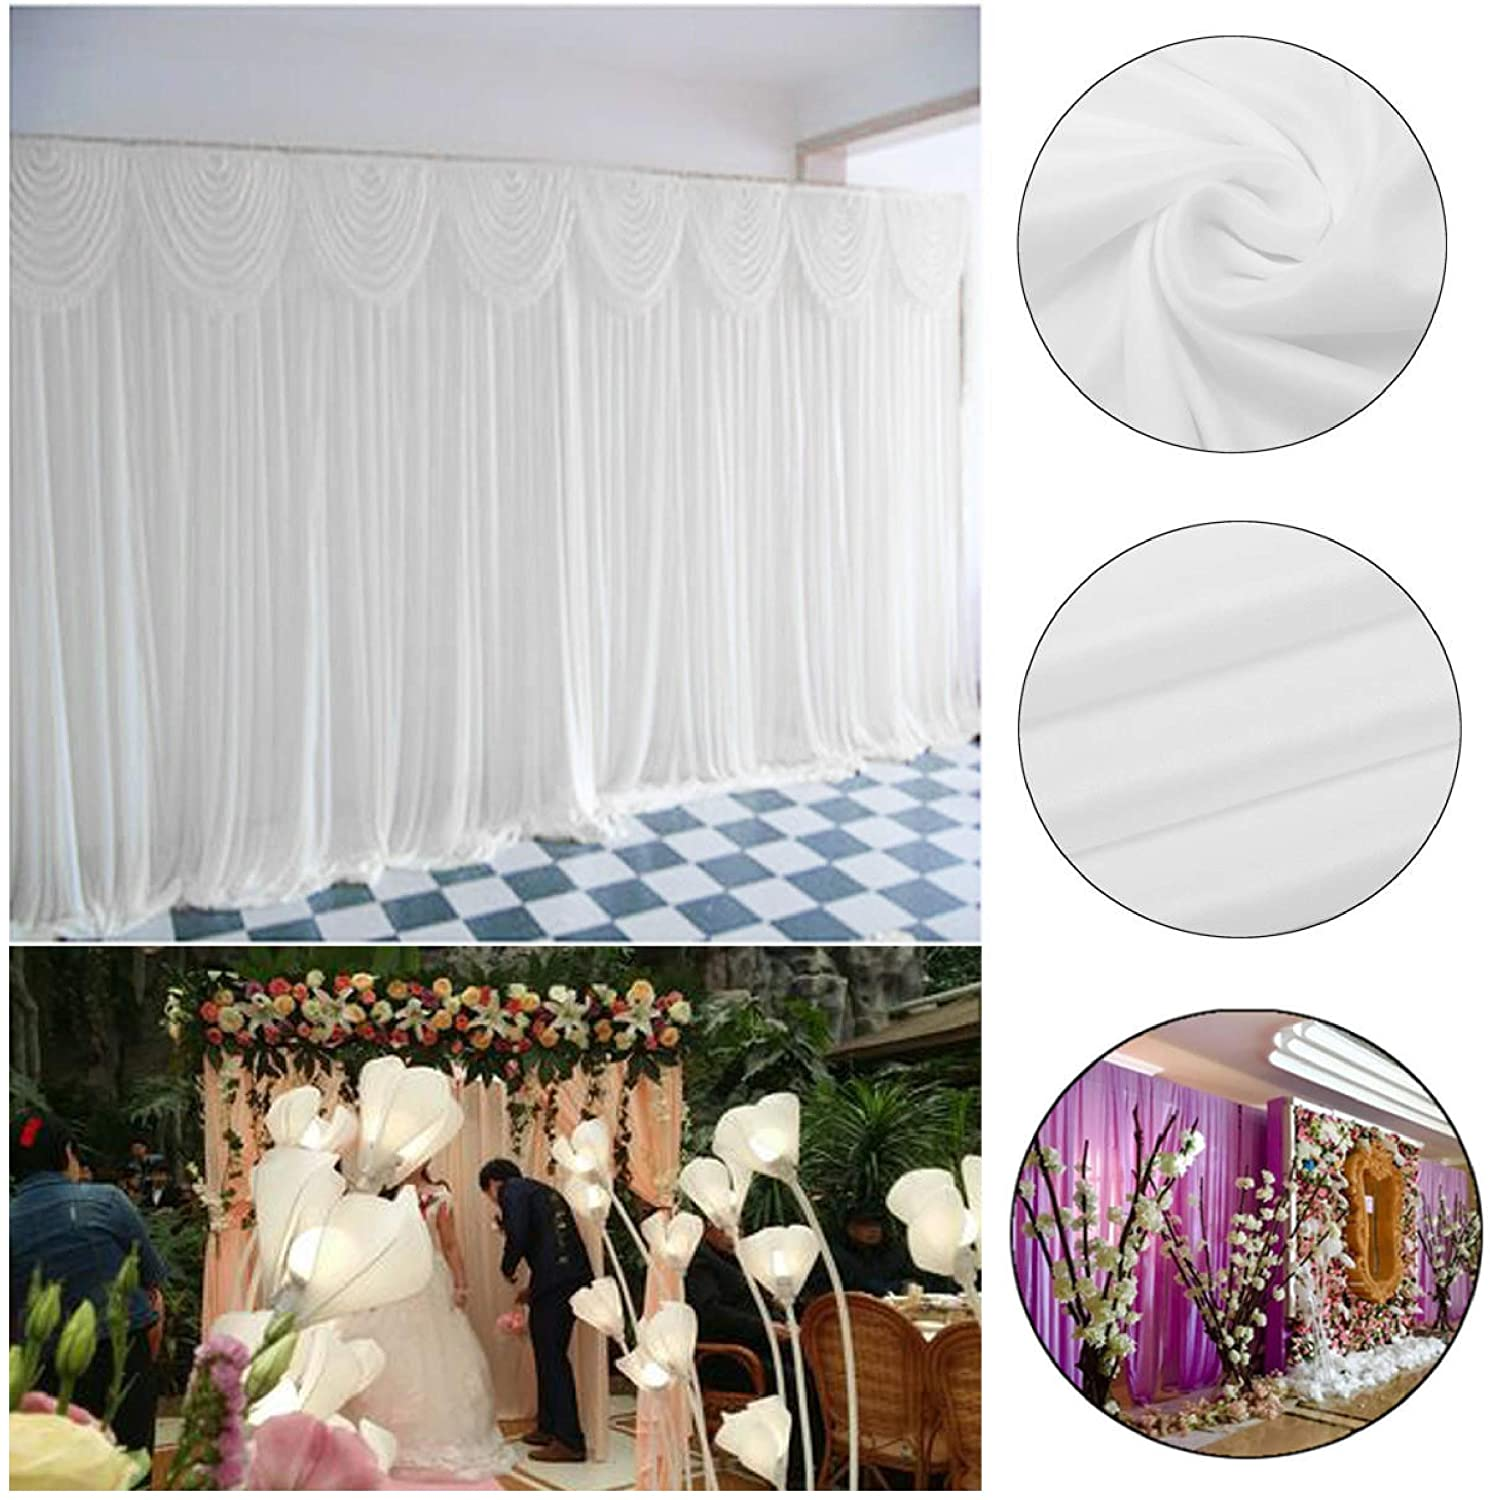 Door Curtain, 2M X 2M White Stage Background Backdrop Drape Curtain Swags Wedding Party US COD